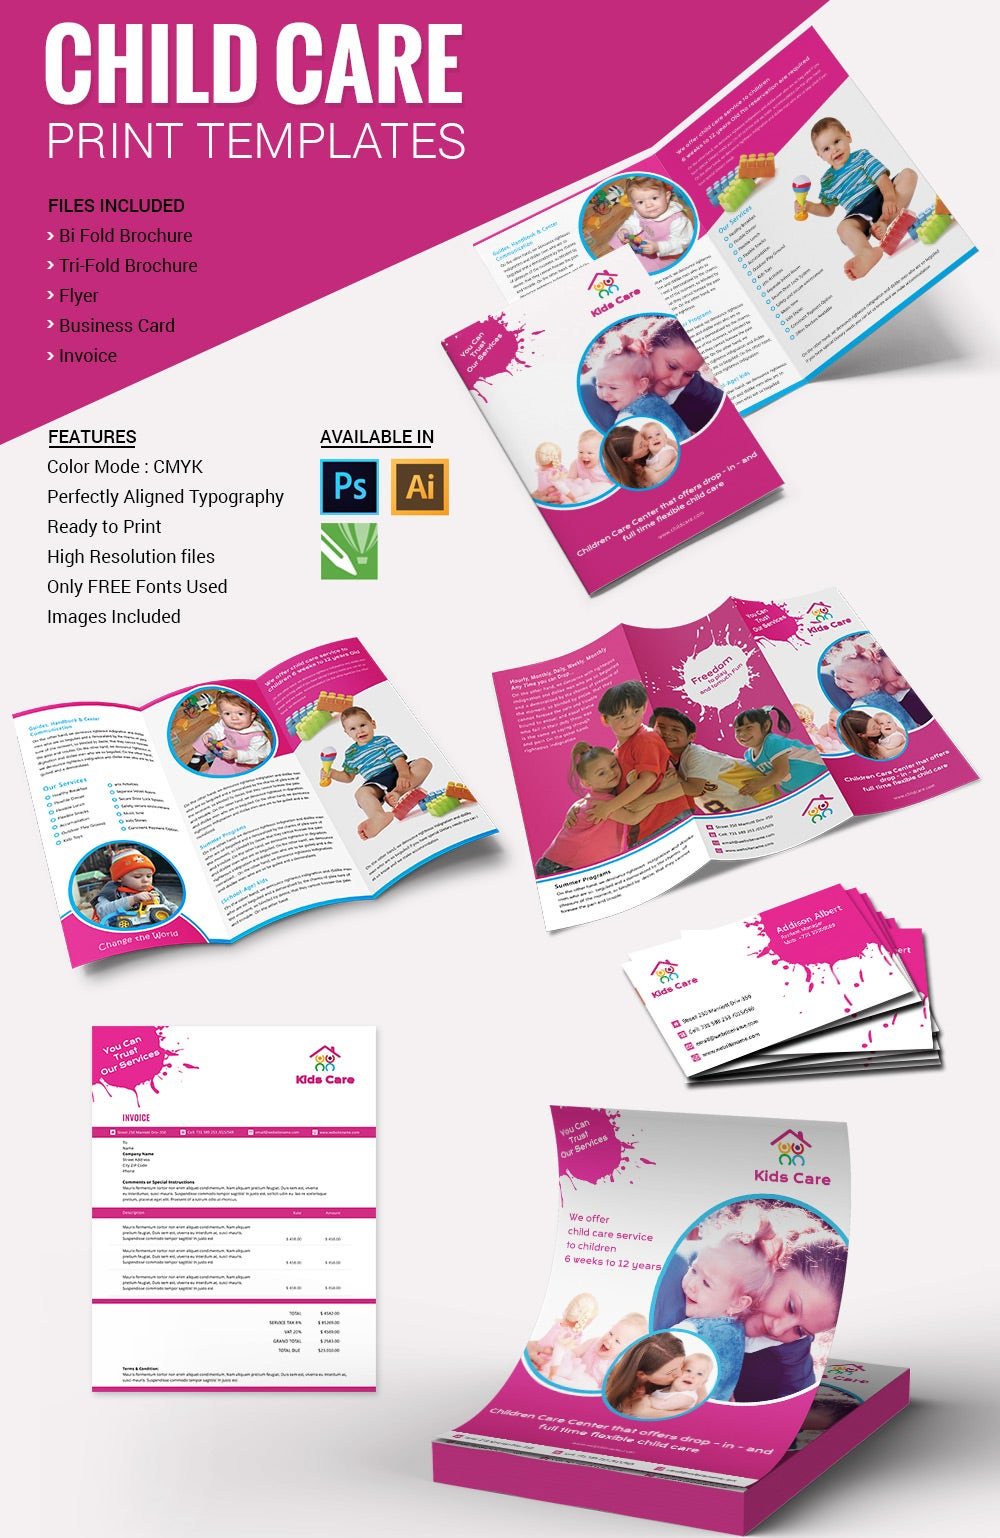 free printable brochure templates online - 10 beautiful child care brochure templates free